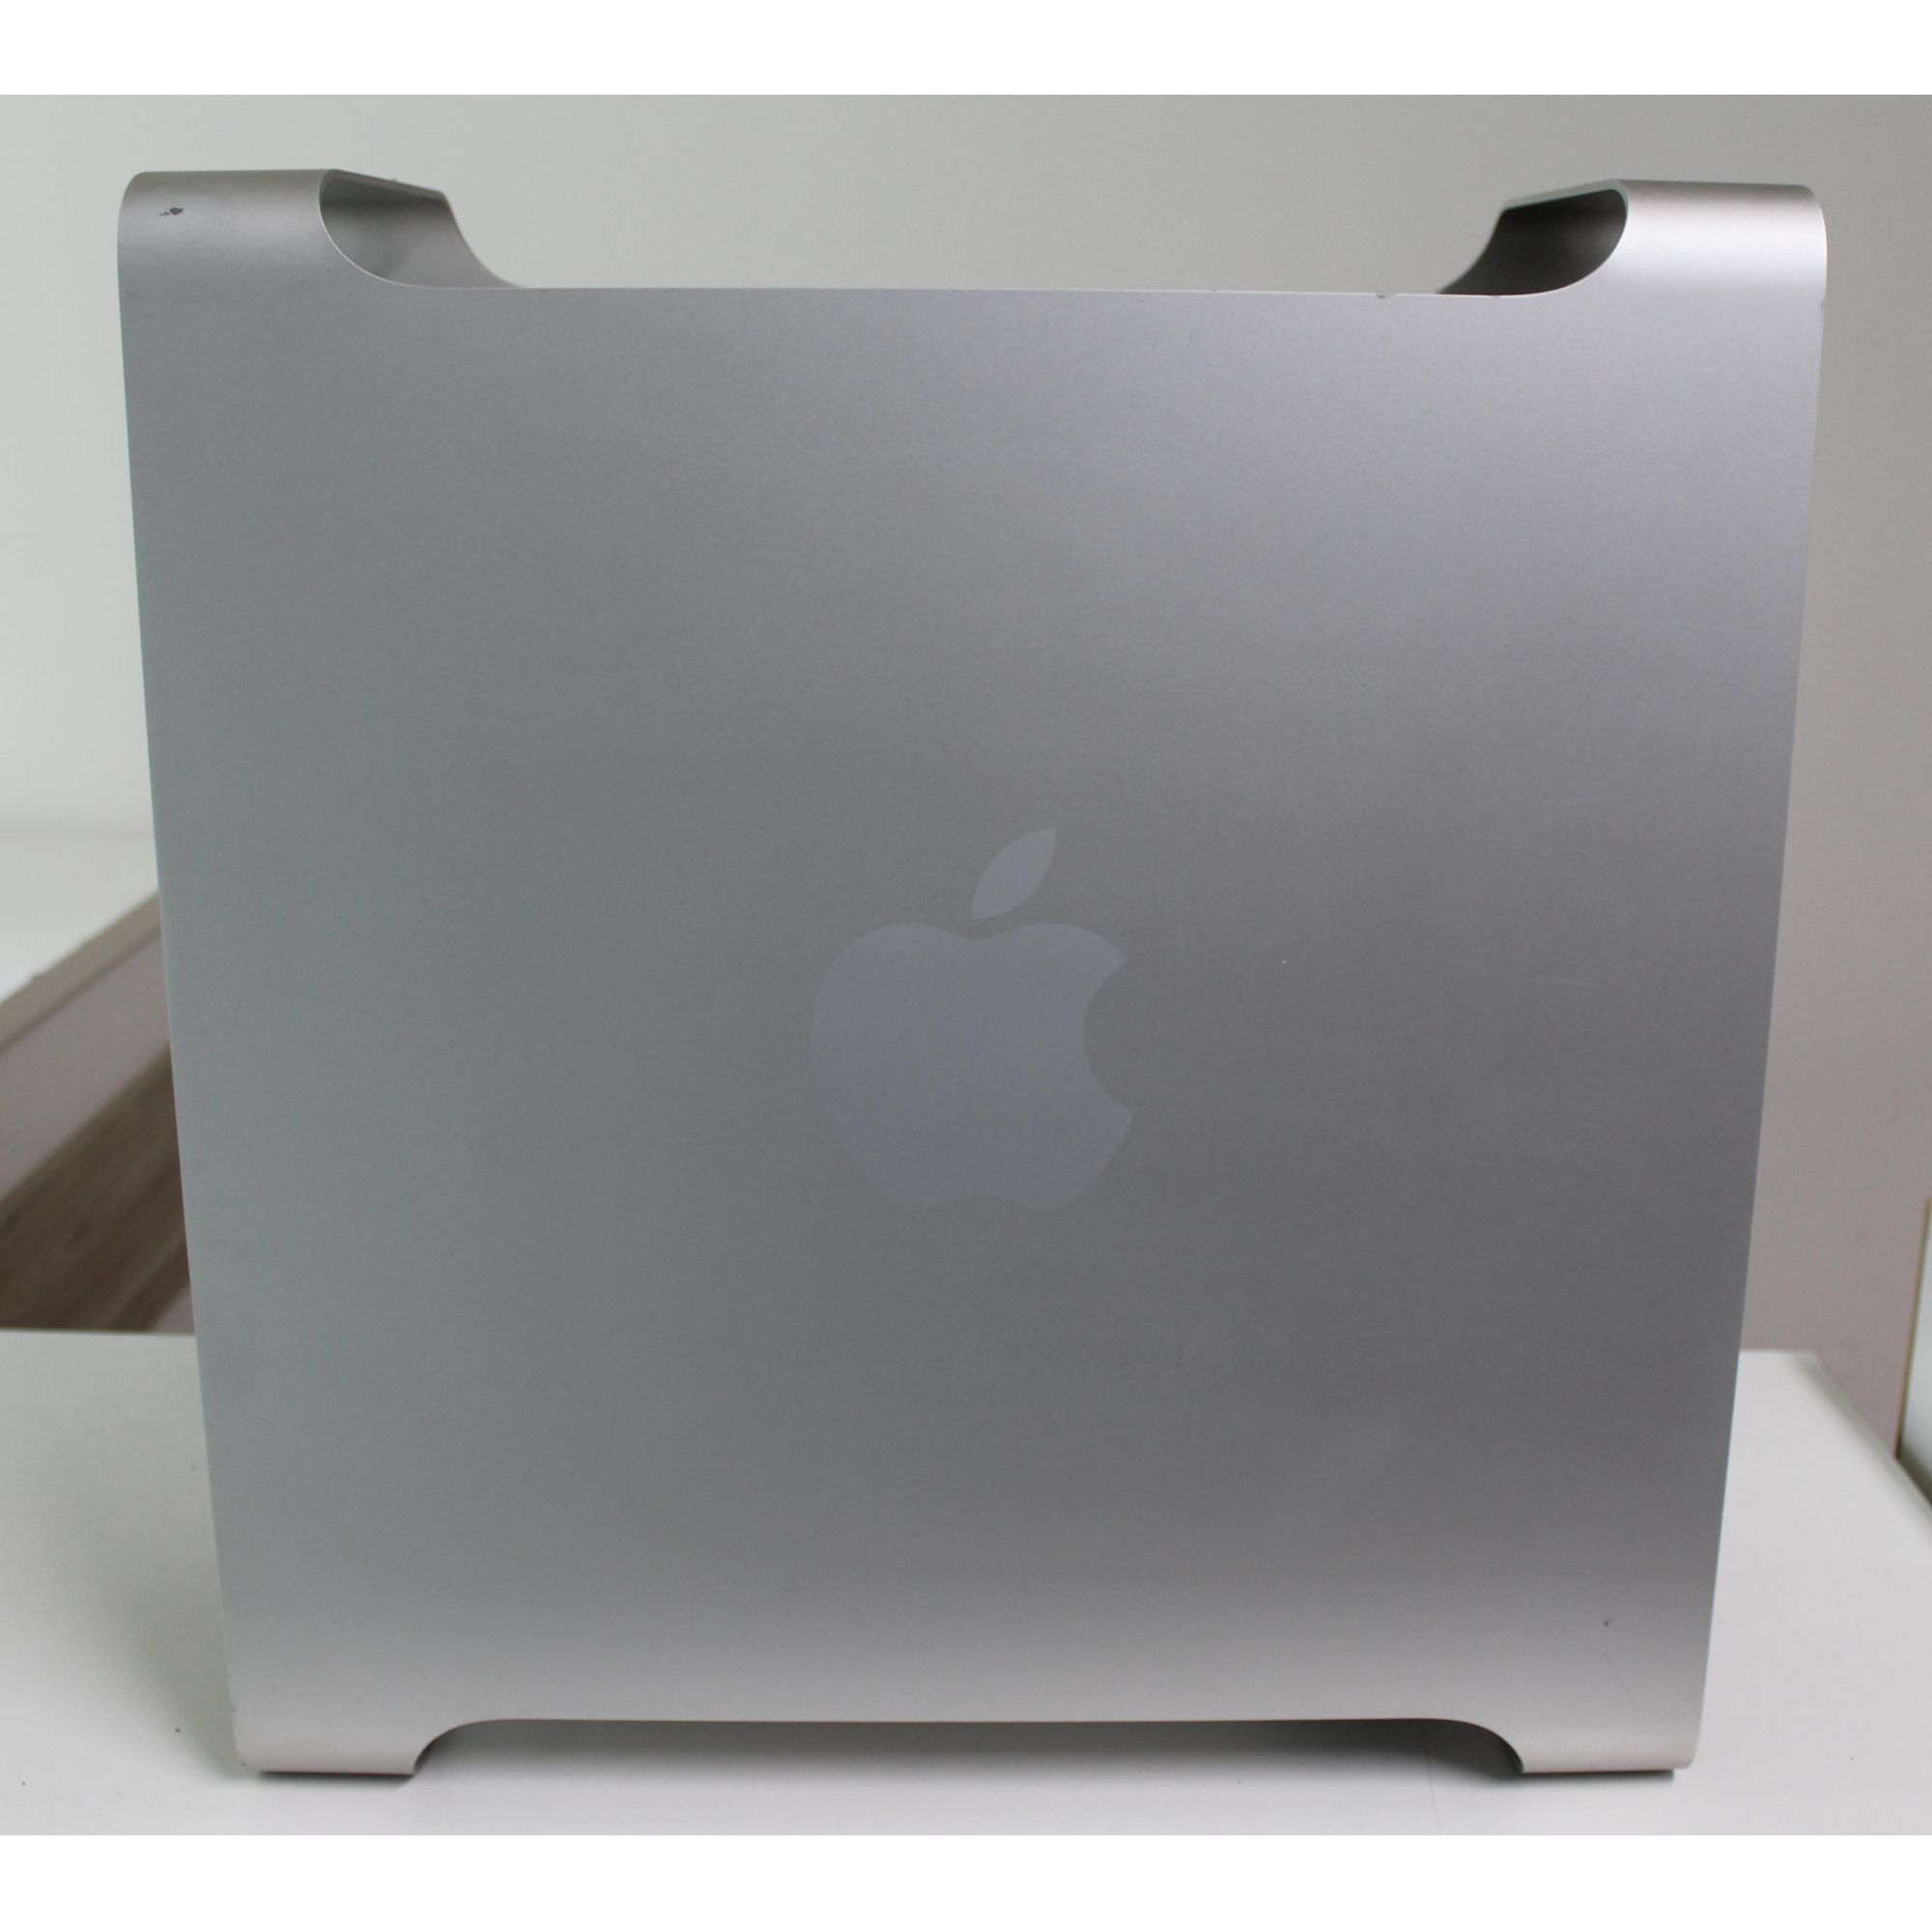 Mac Pro MA356LL/A 2x Intel Xenon Dual Core 2.6GHz 4GB 250GB